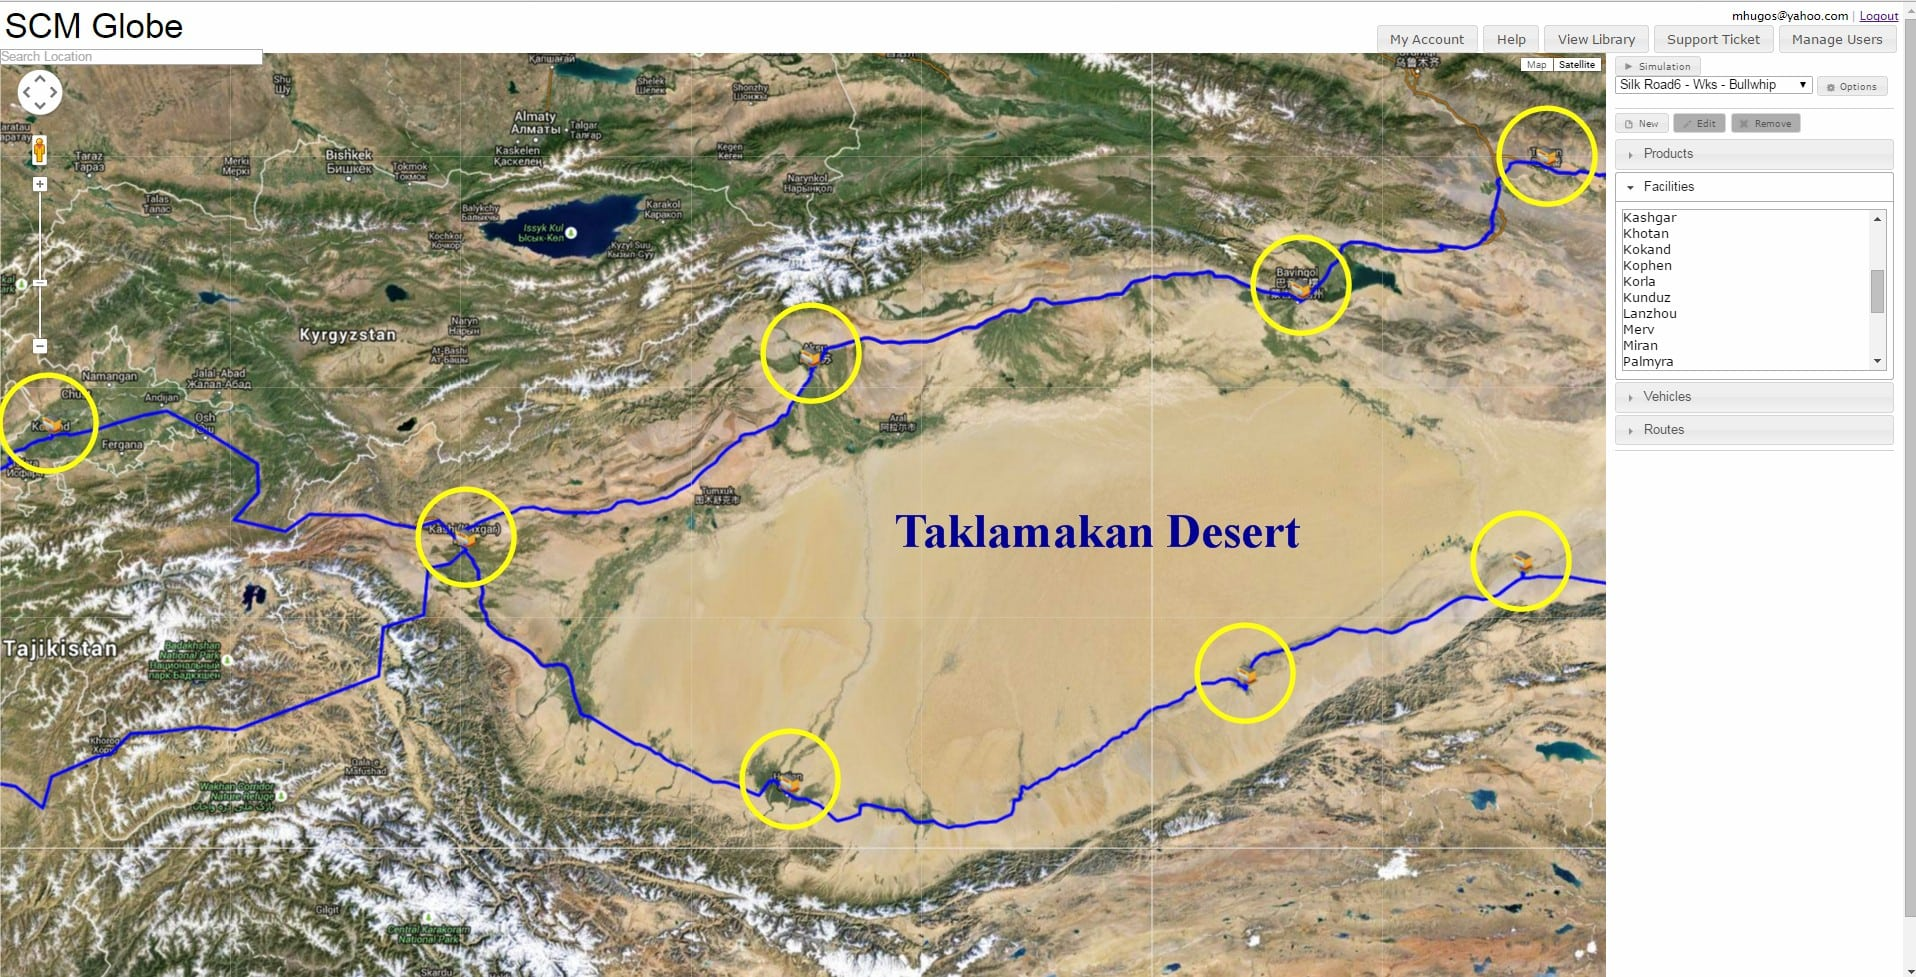 A map showing how the Silk Road splits into northern and southern routes to cross the great Taklamakan Desert. The route is highlighted in blue with yellow circles on it.